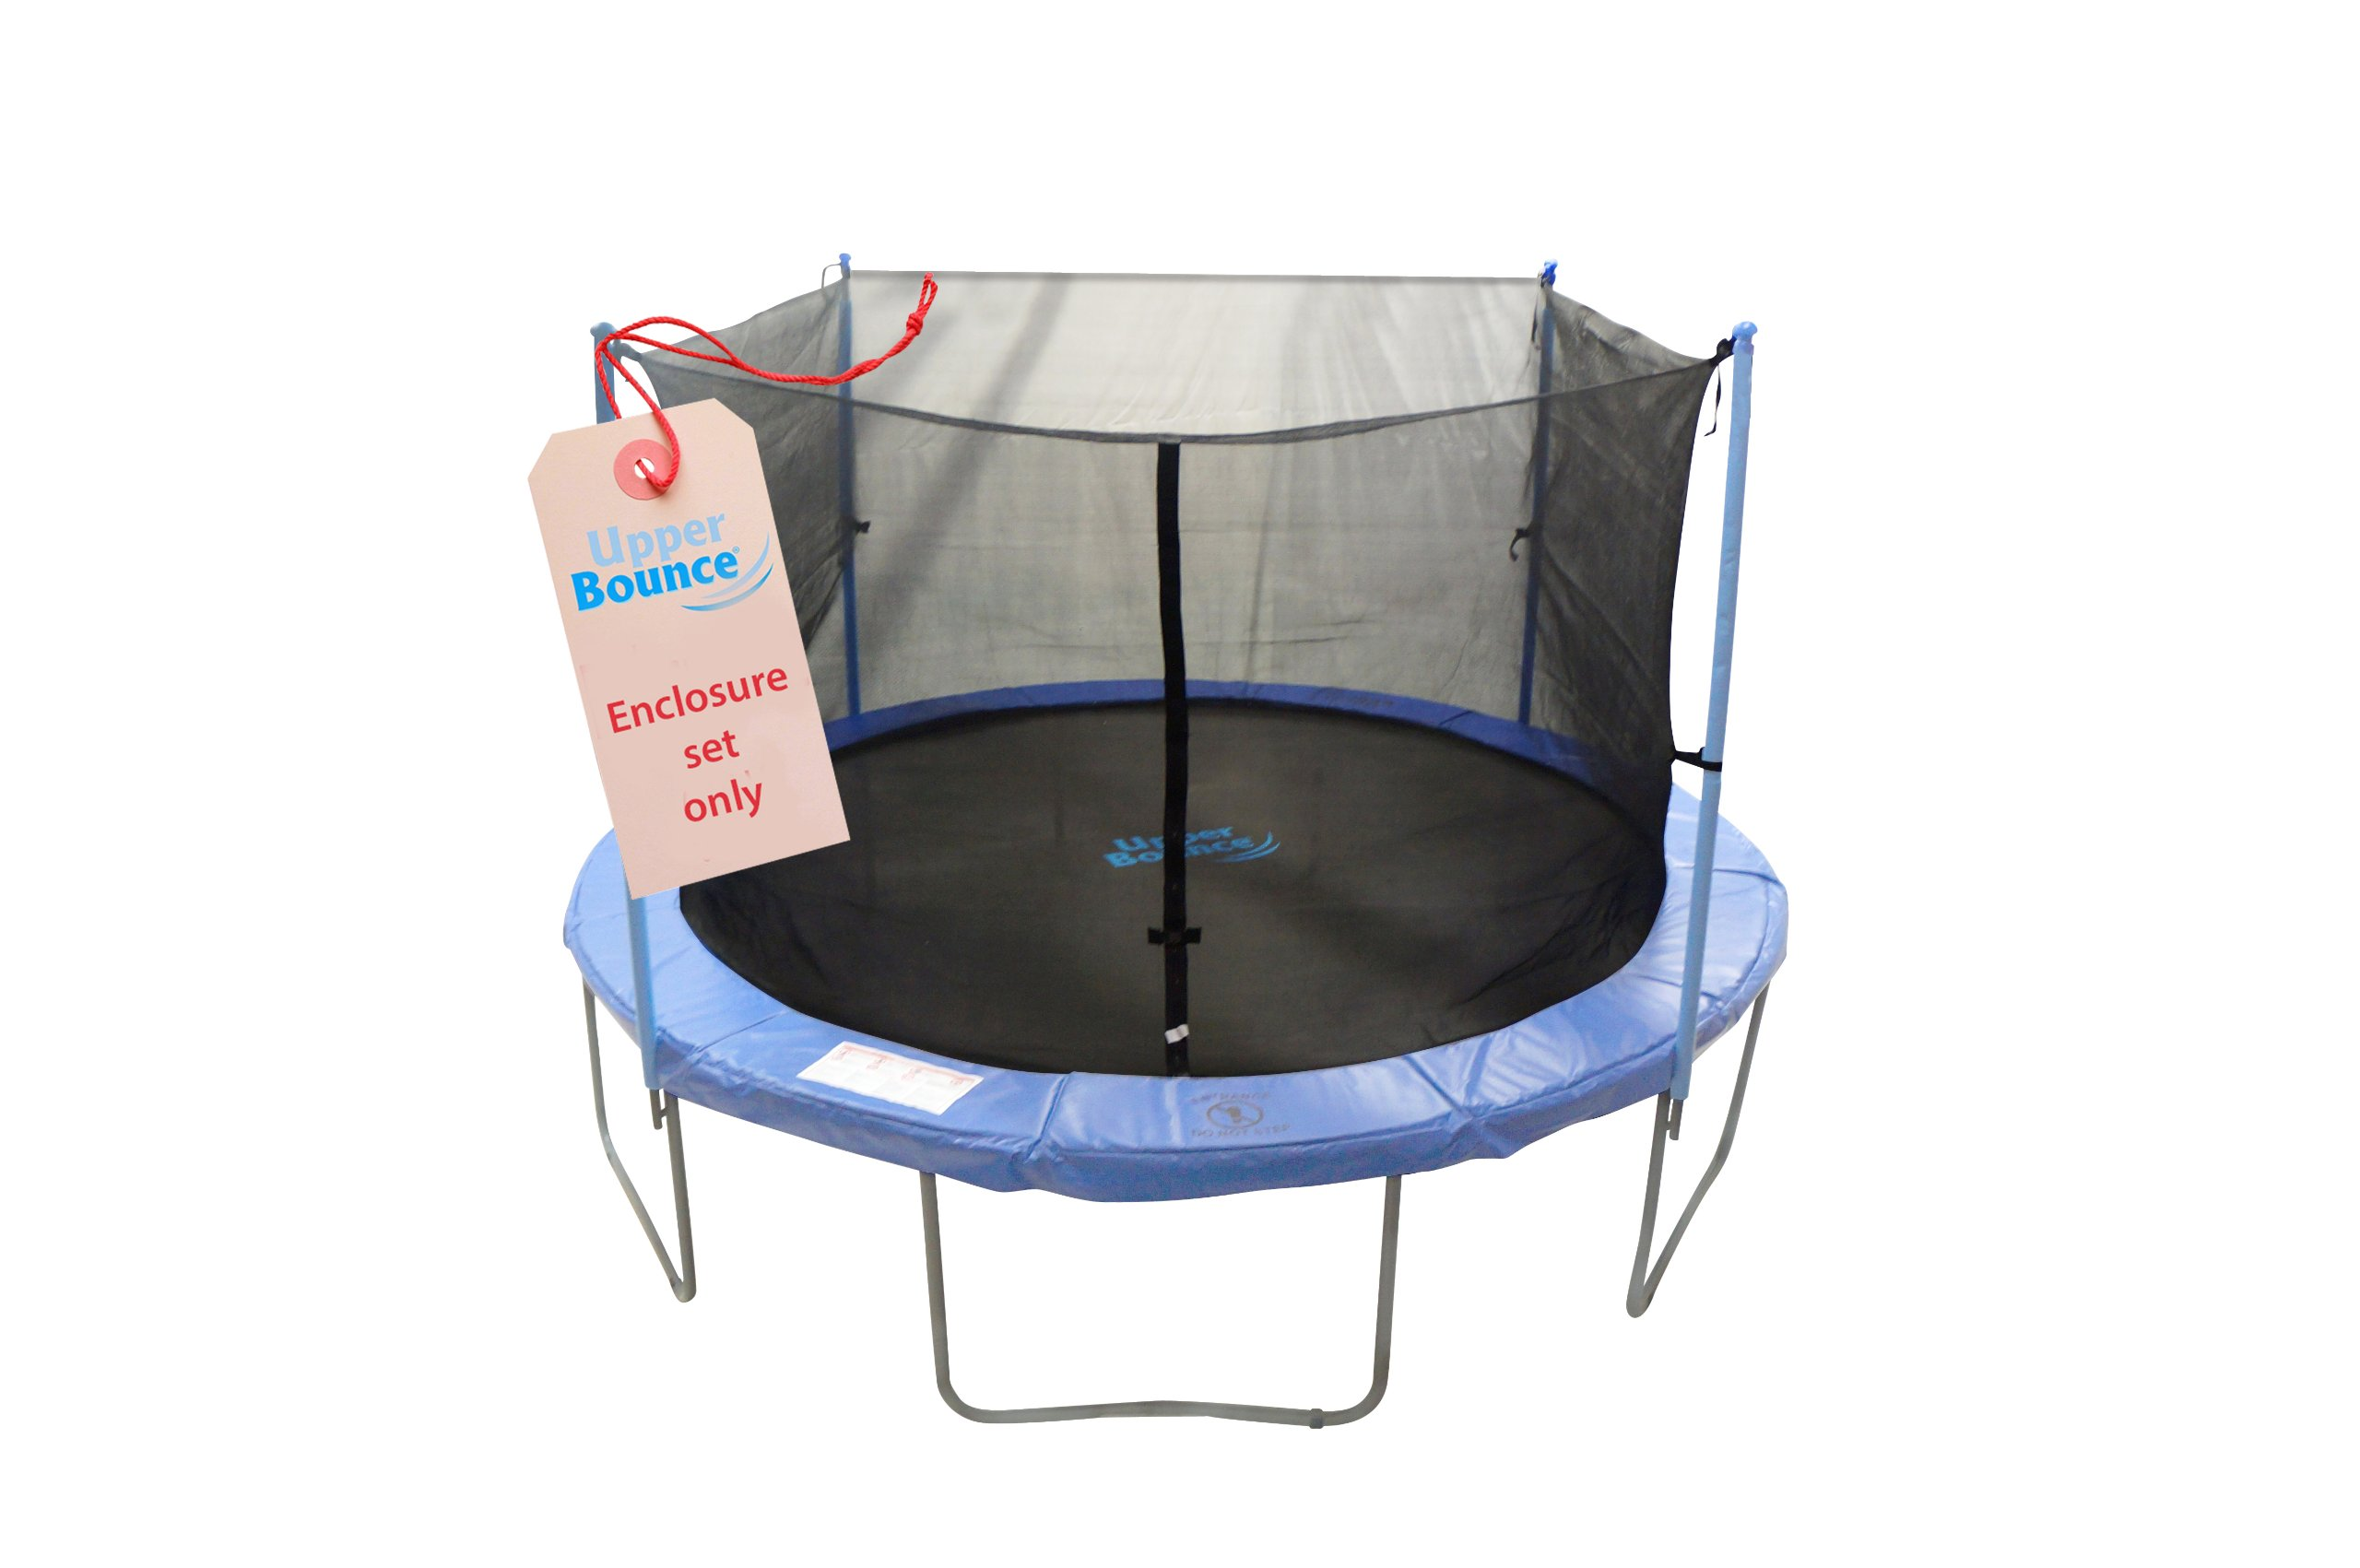 Trampoline Enclosure Set, to fit 12 FT. Round Frames, for 2 or 4 W-Shaped Legs -Set Includes: Net, Poles & Hardware Only